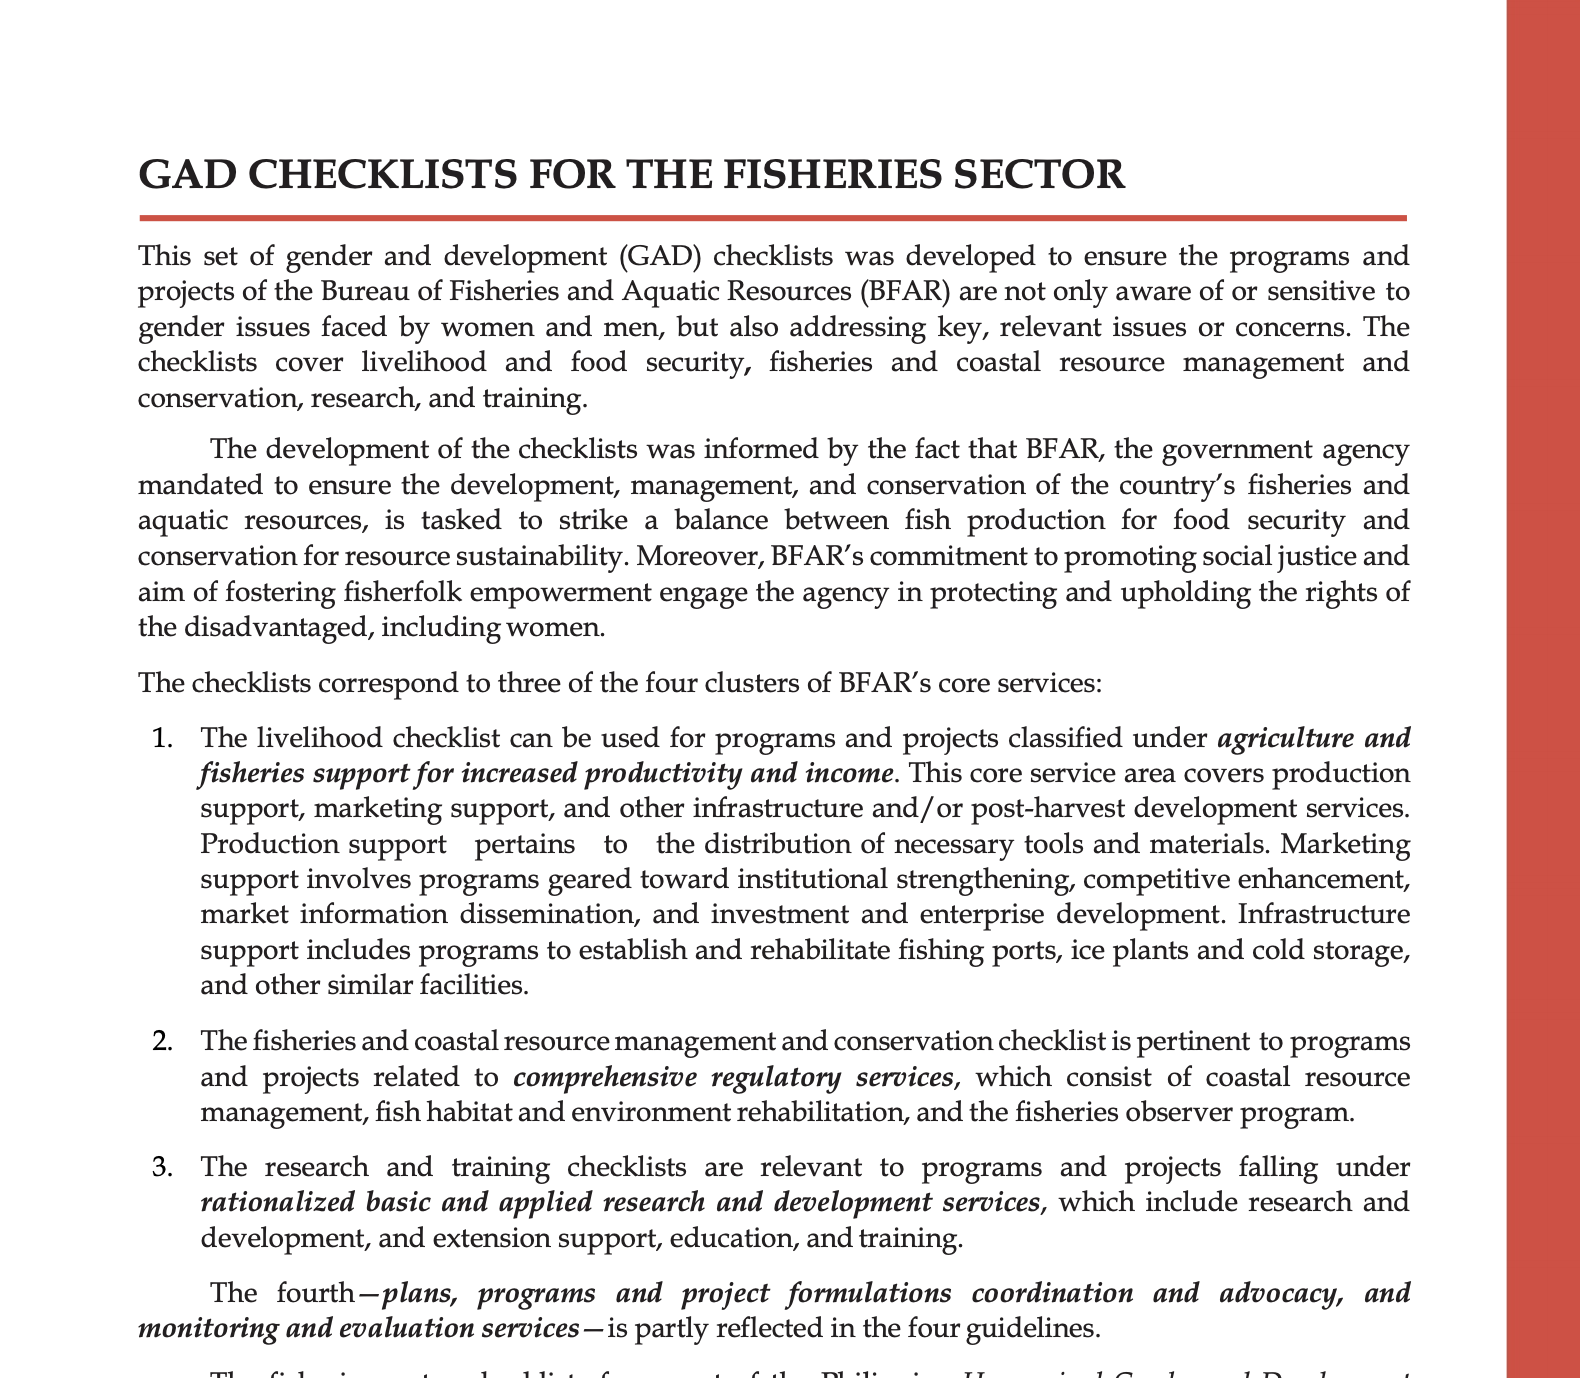 Gender and Development Checklist for the Fisheries Sector